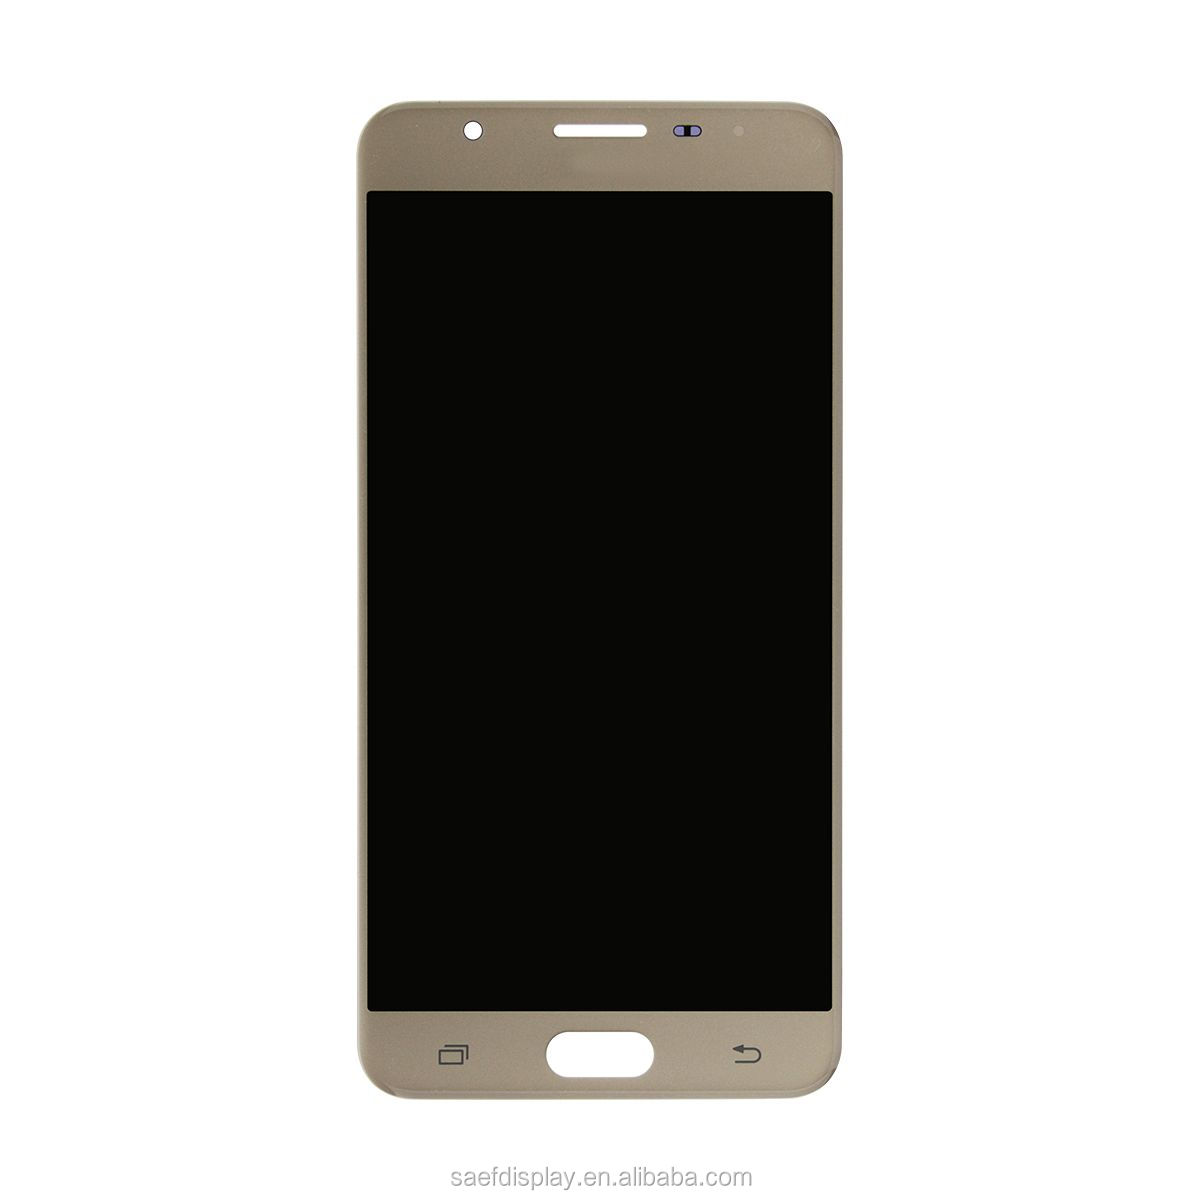 LCD Display fits samsung Galaxy J7 Prime 2016 LCD Touch <strong>Screen</strong> Dual Hole With Frame For J7 Prime LCD G610 G610K G610F G610M